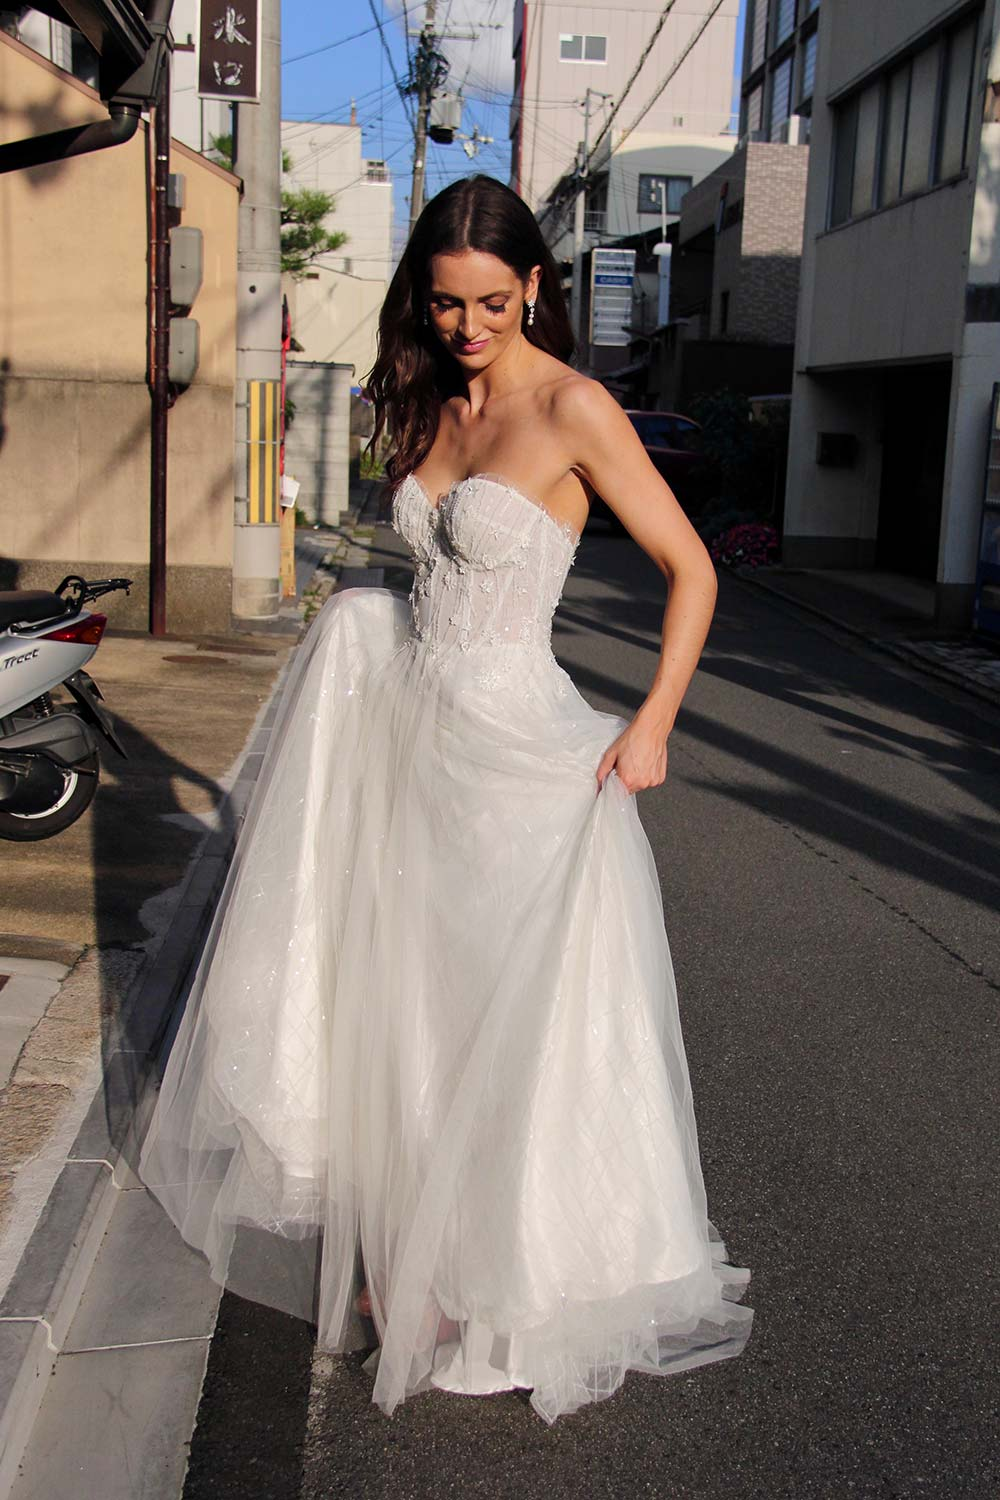 Female model wearing Vinka Design An Oriental Affair Wedding Dress. On a japanese street the front detail of a semi-sheer bodice with boning and hand-appliqued lace and skirt made with multiple layers of tulle